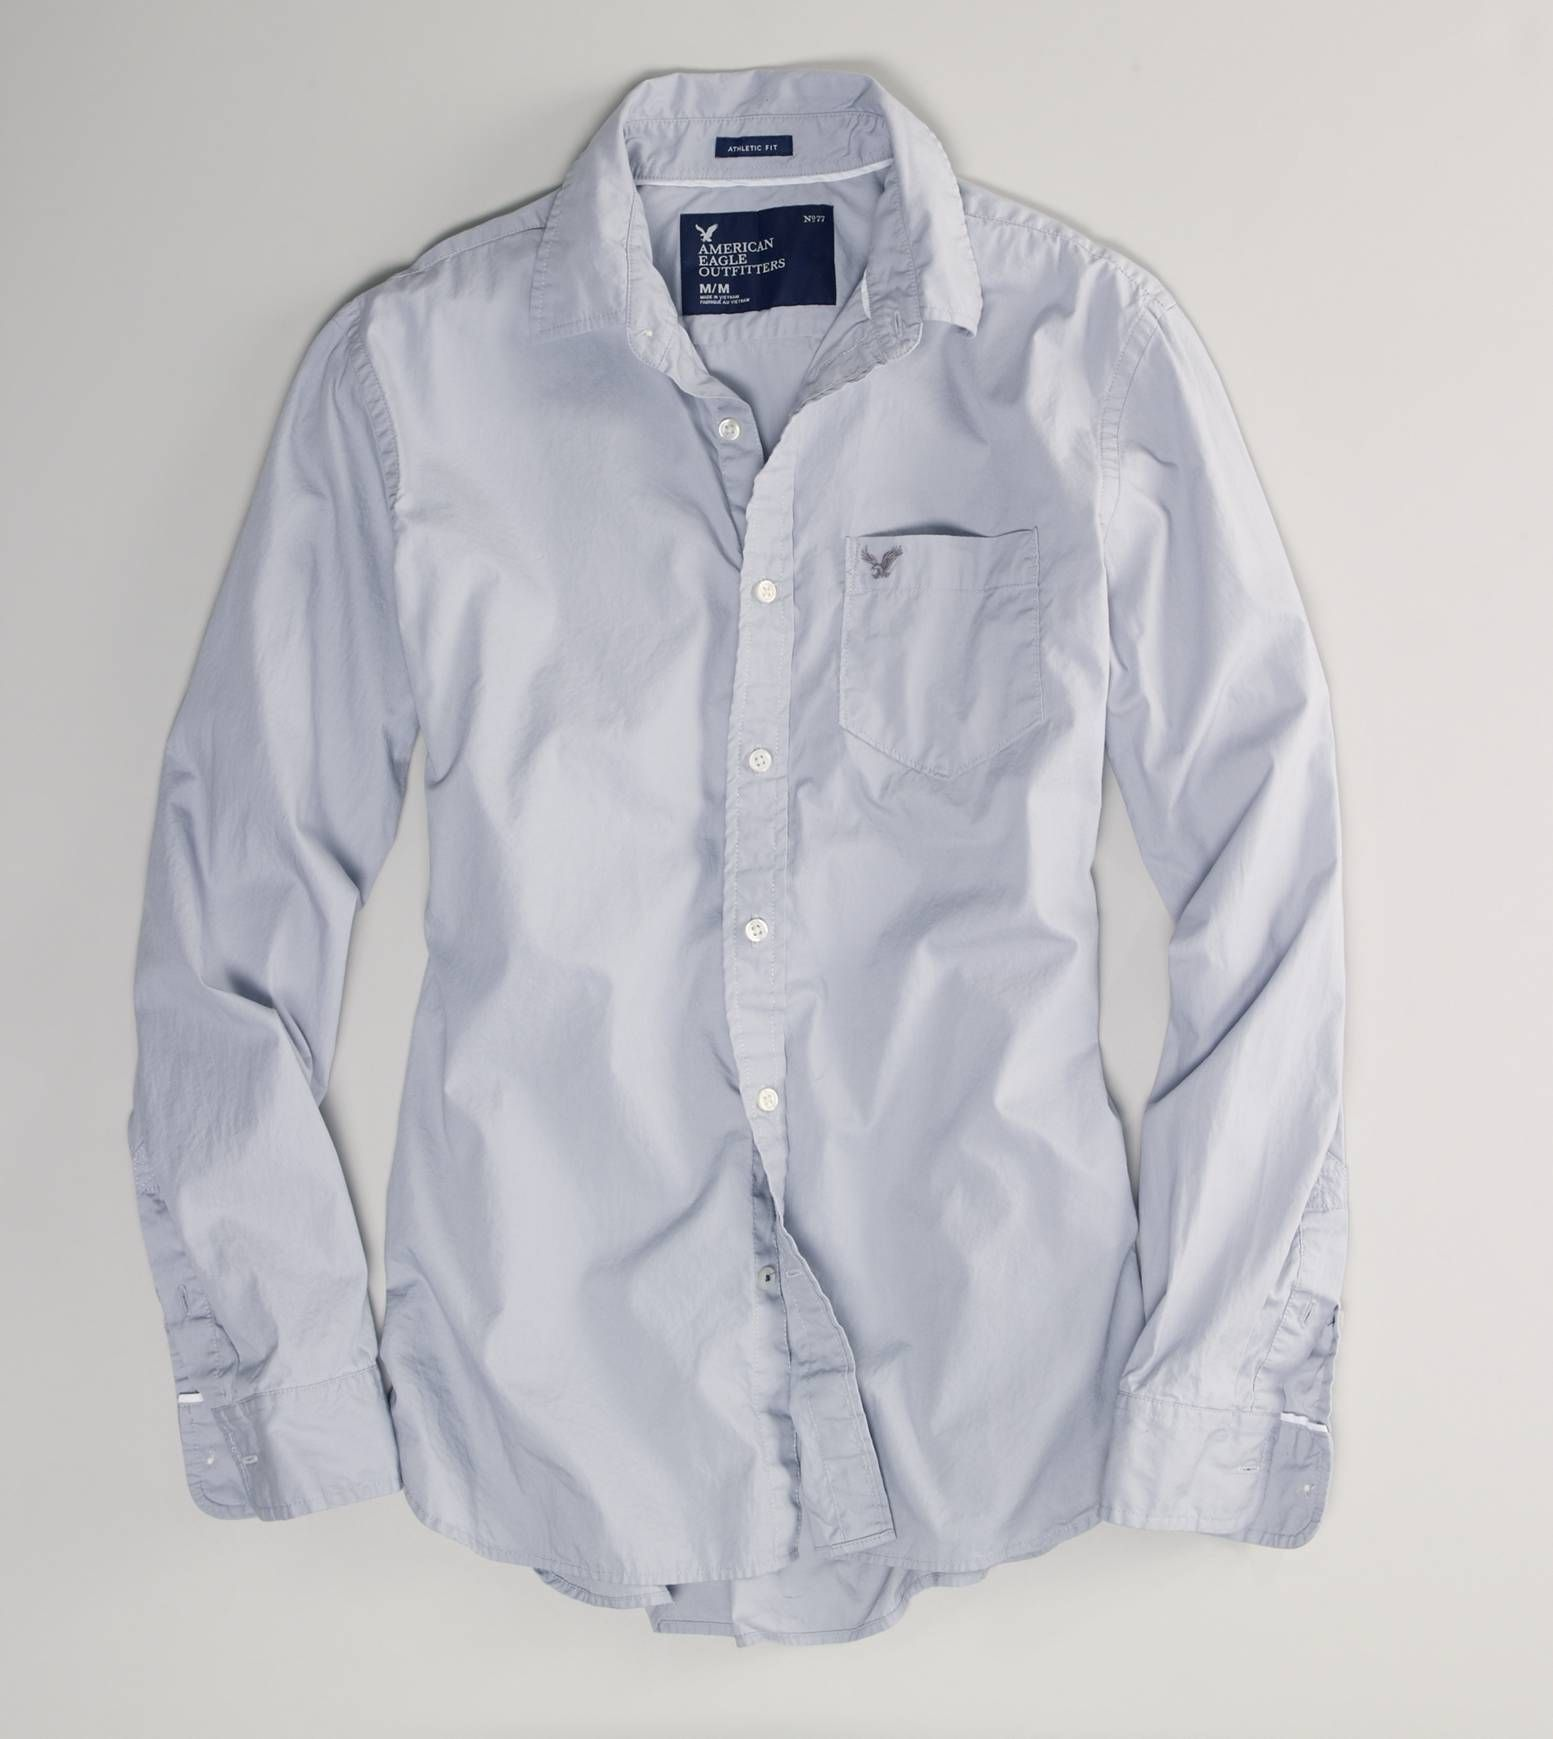 Men's gray shirt from American Eagle | Family Pictures: Lace, Gray ...